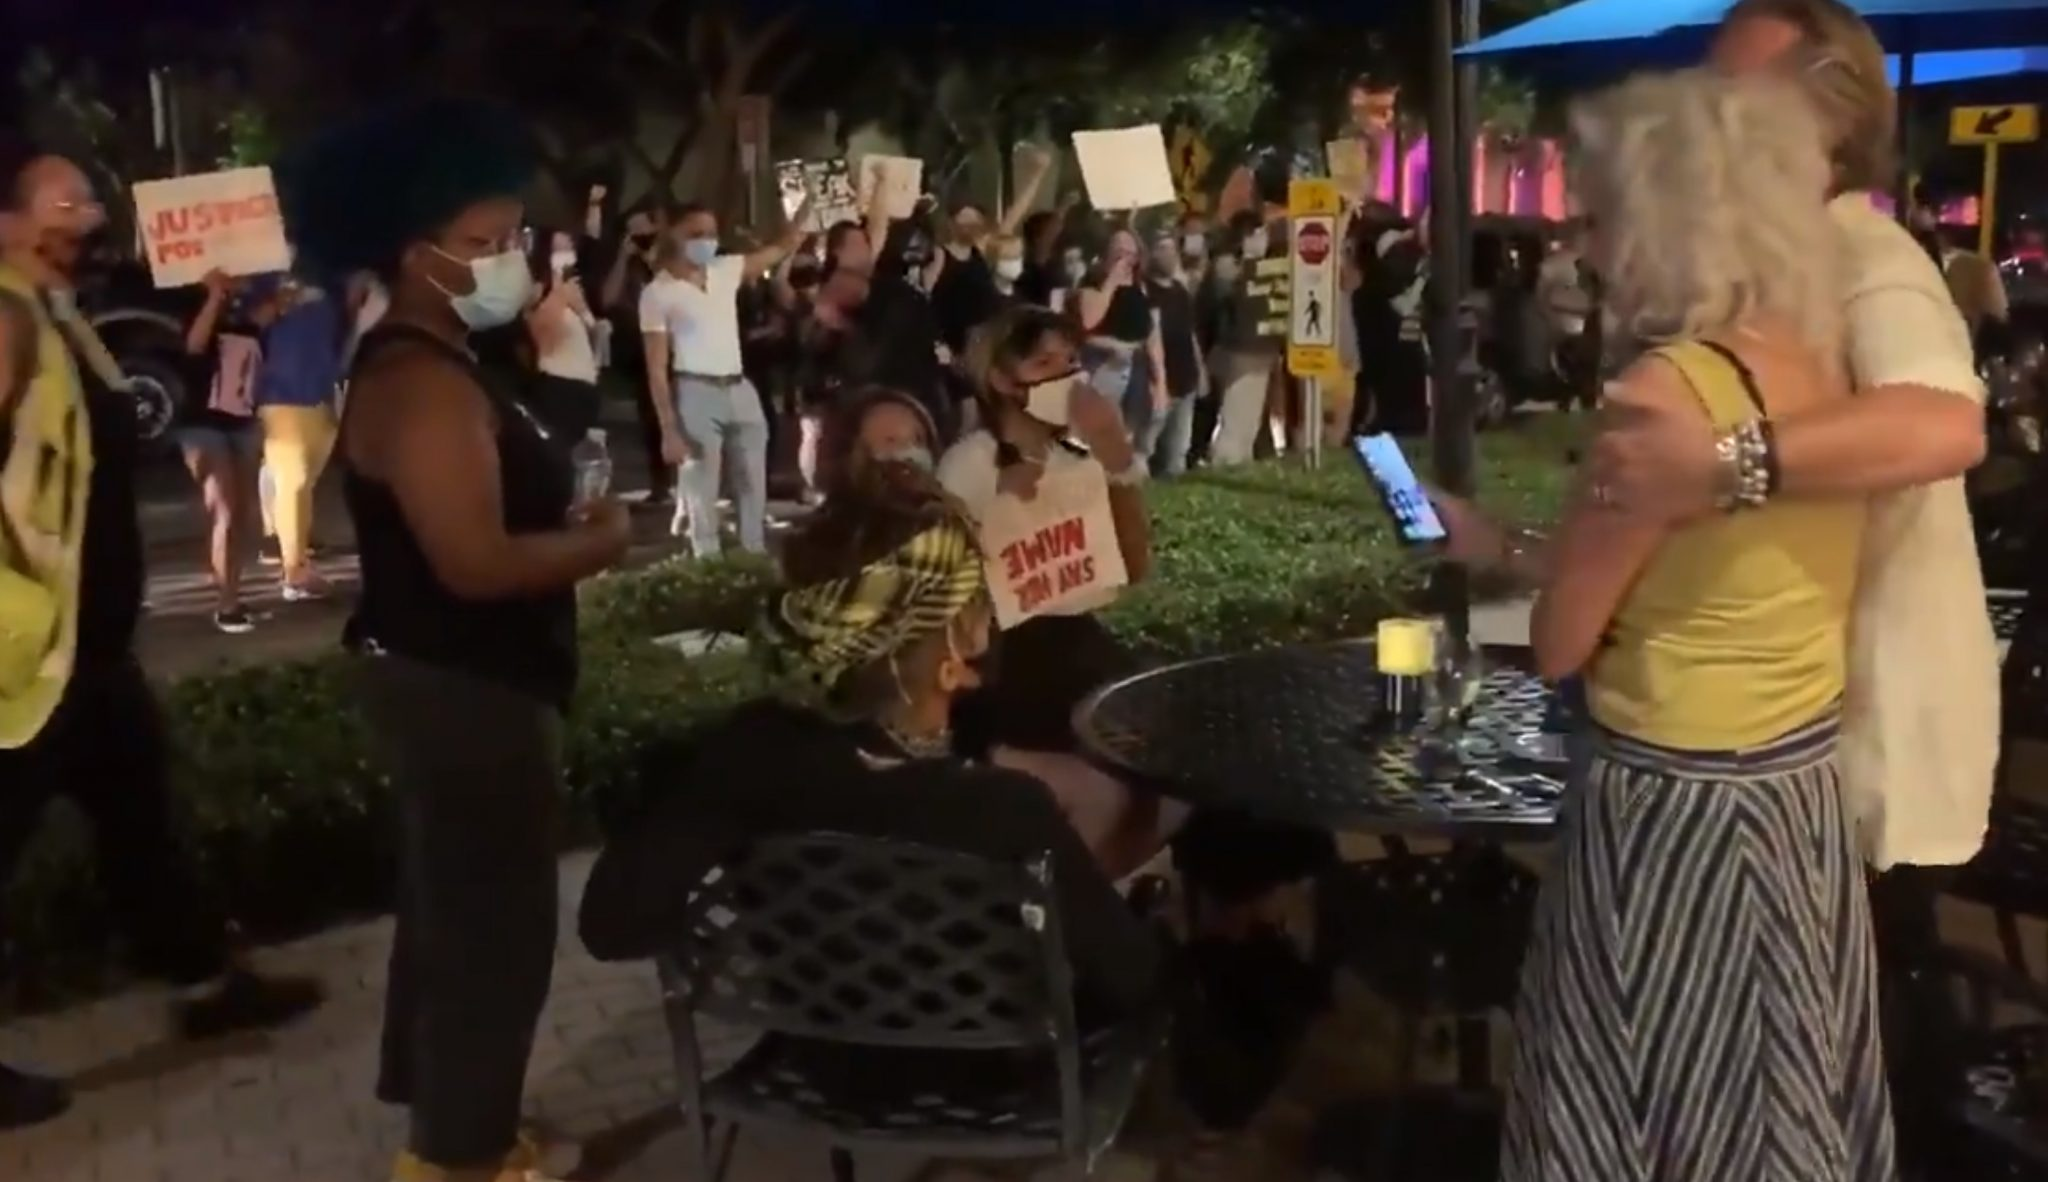 Florida Demonstrators Heckle Diners, Swipe Table From Elderly Couple, Video Shows